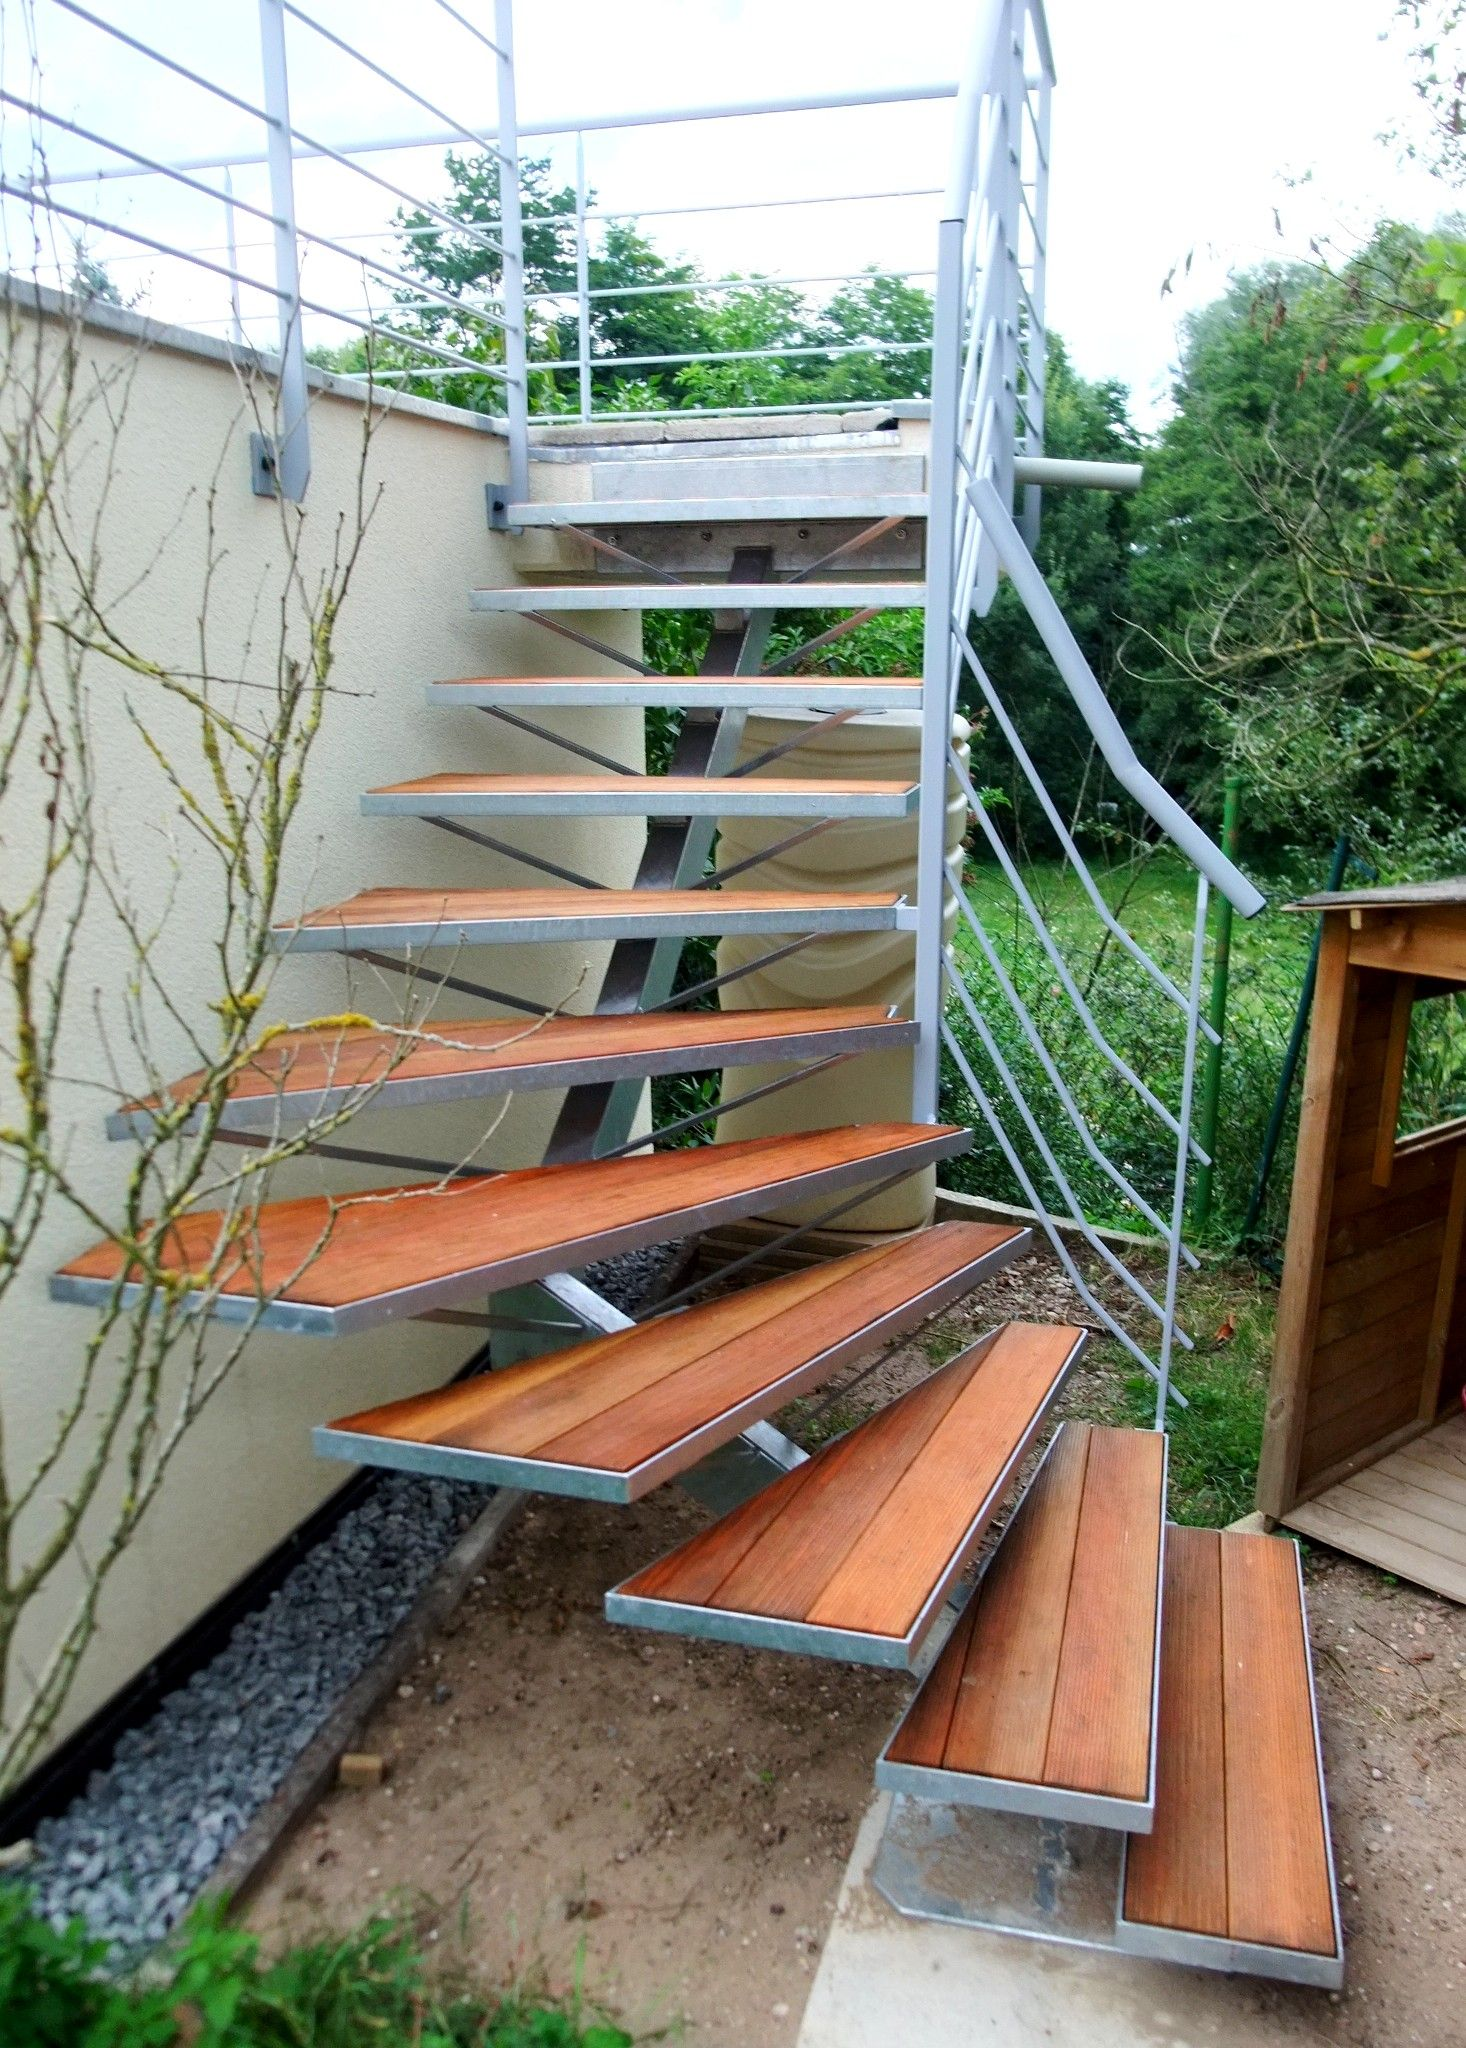 Escalier Terrasse Recherche Google Outdoor Structures Outdoor Garden Bridge